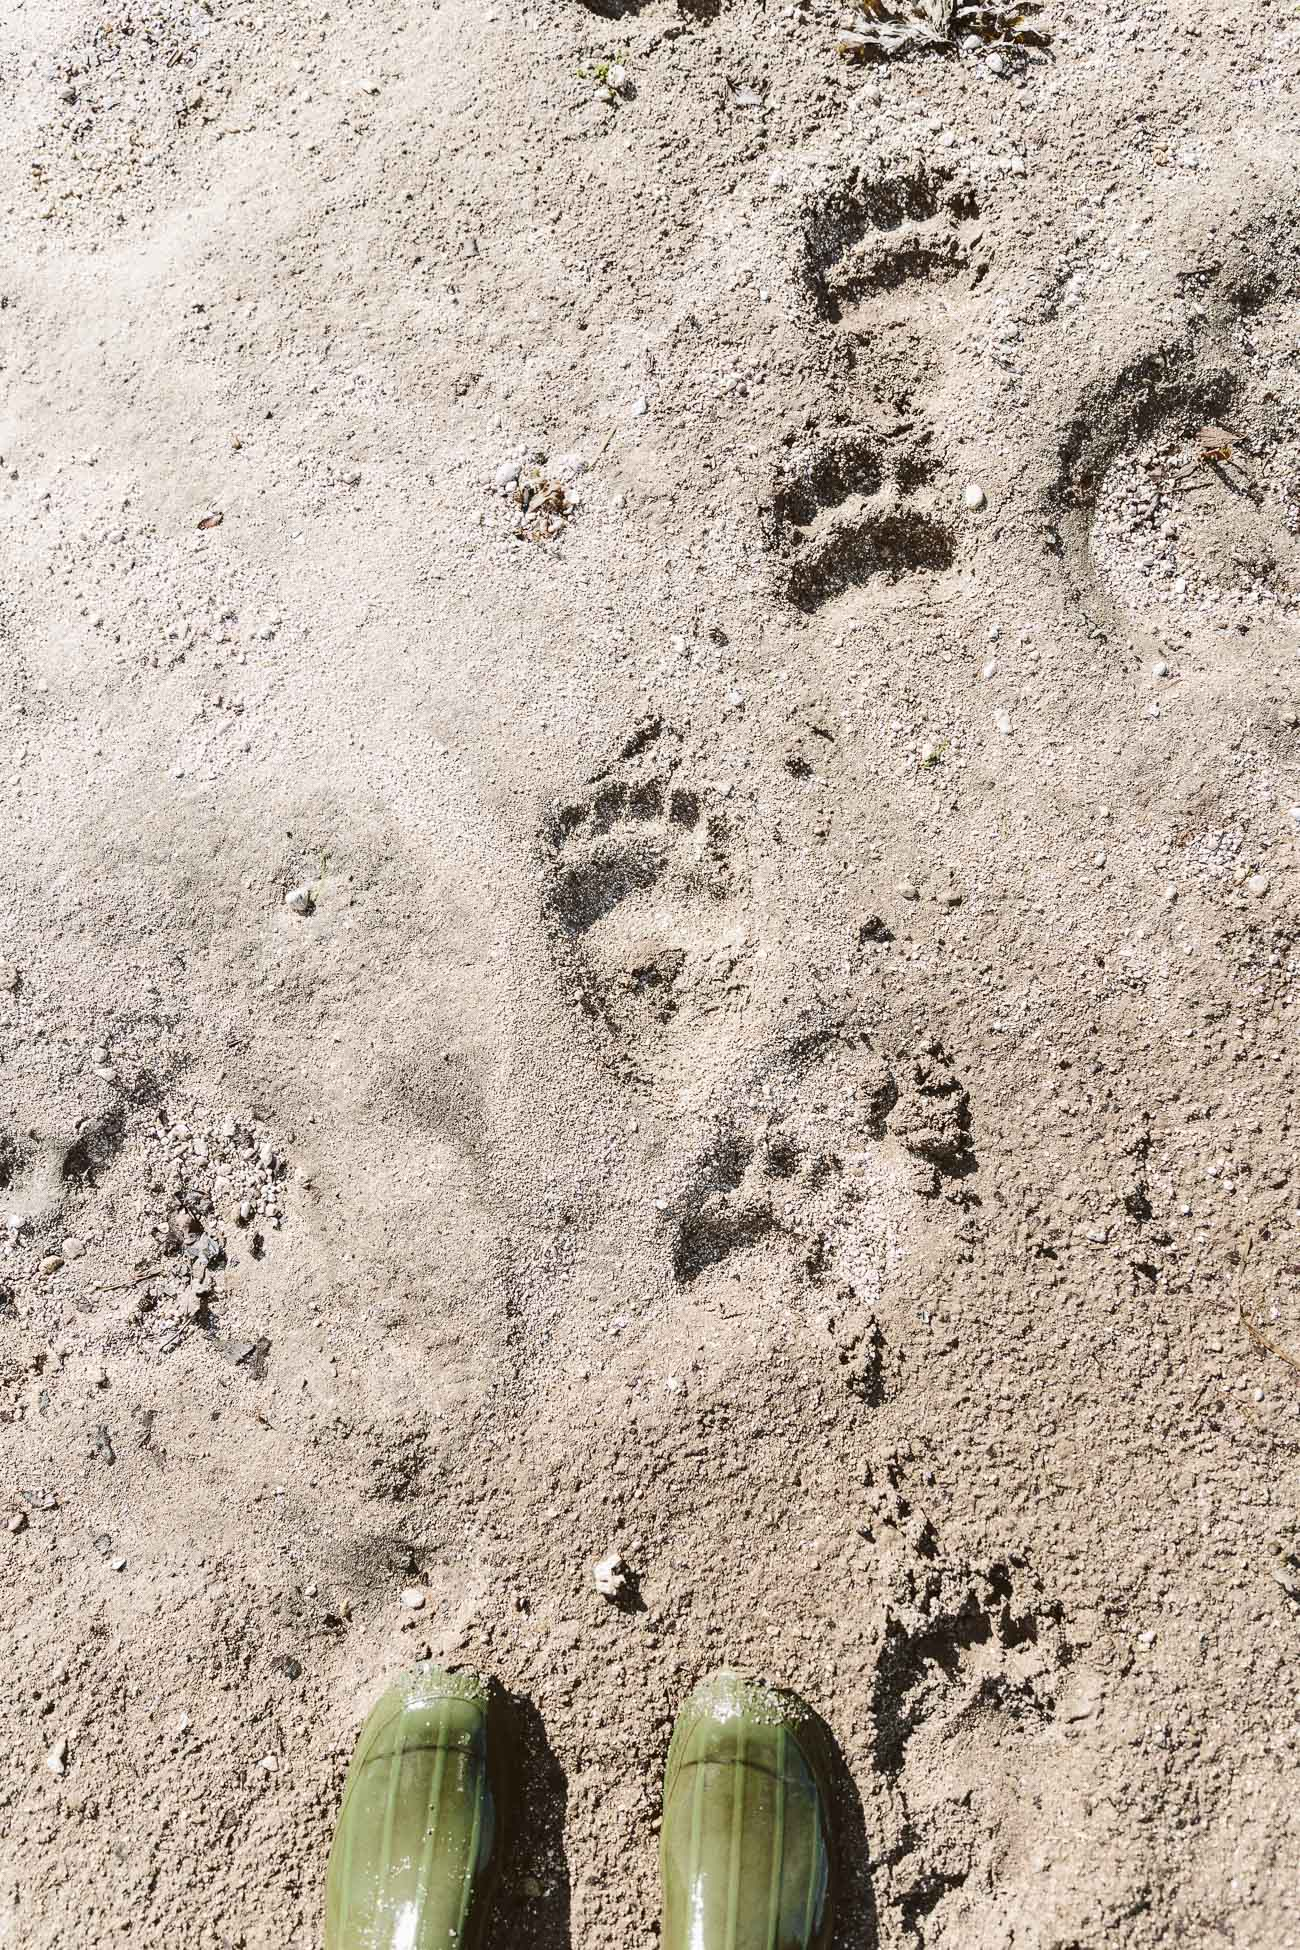 Alaskan Brown Bear traces at Katmai National Park Alaska